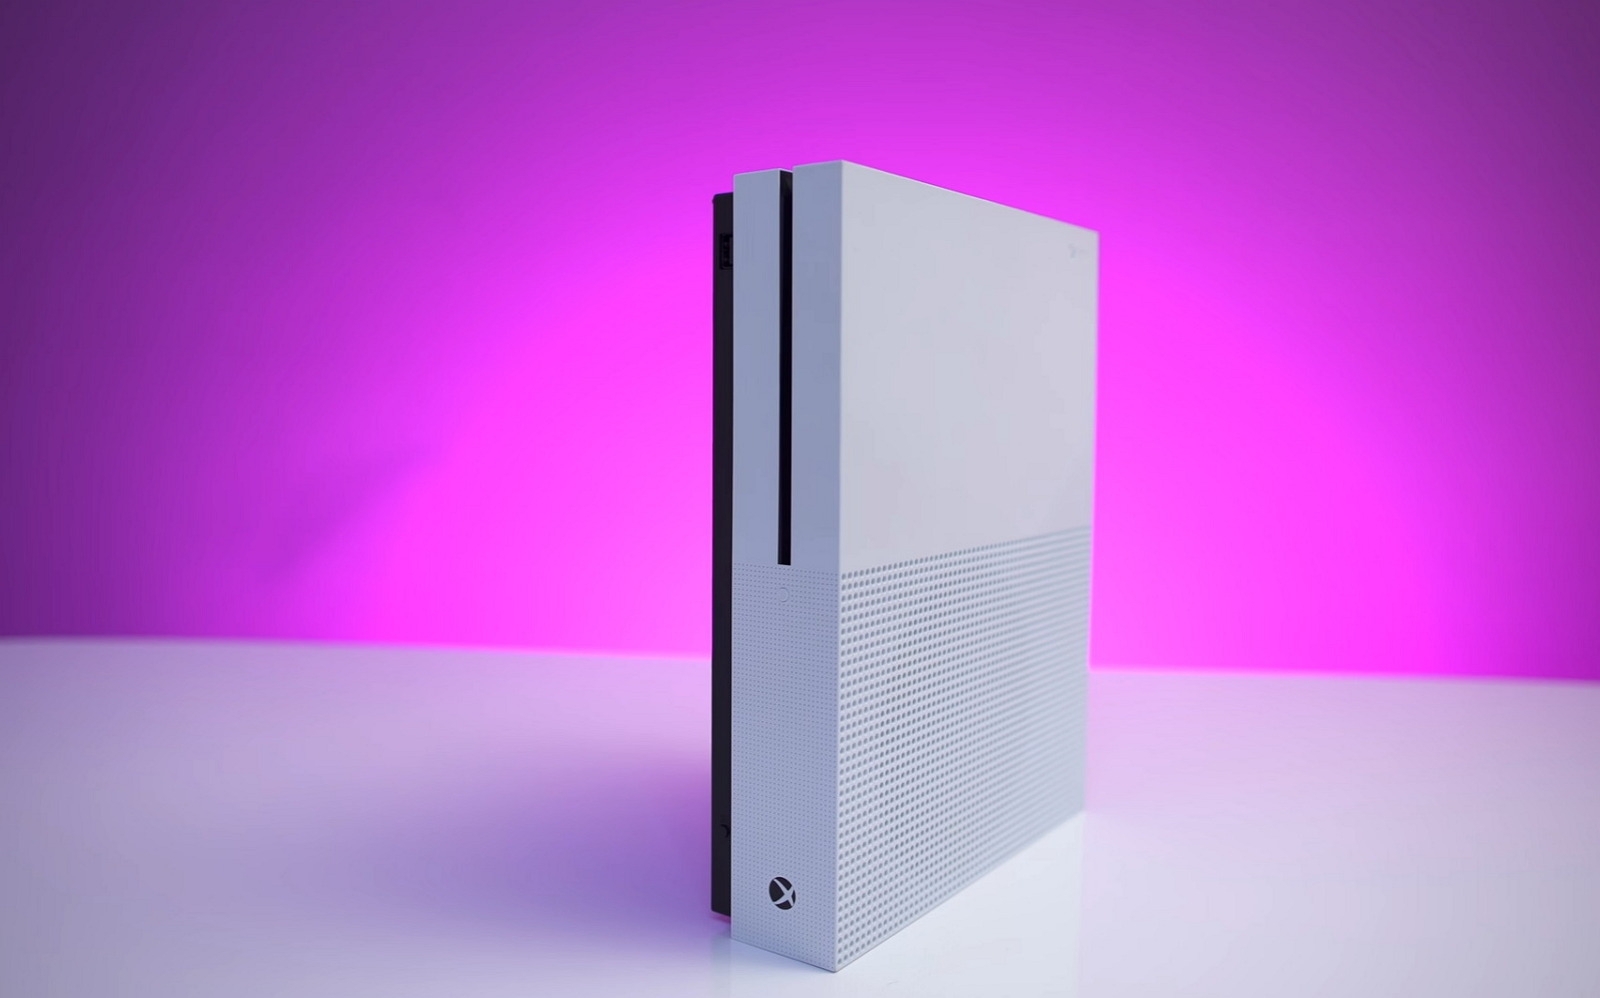 Xbox One S console (purple background)